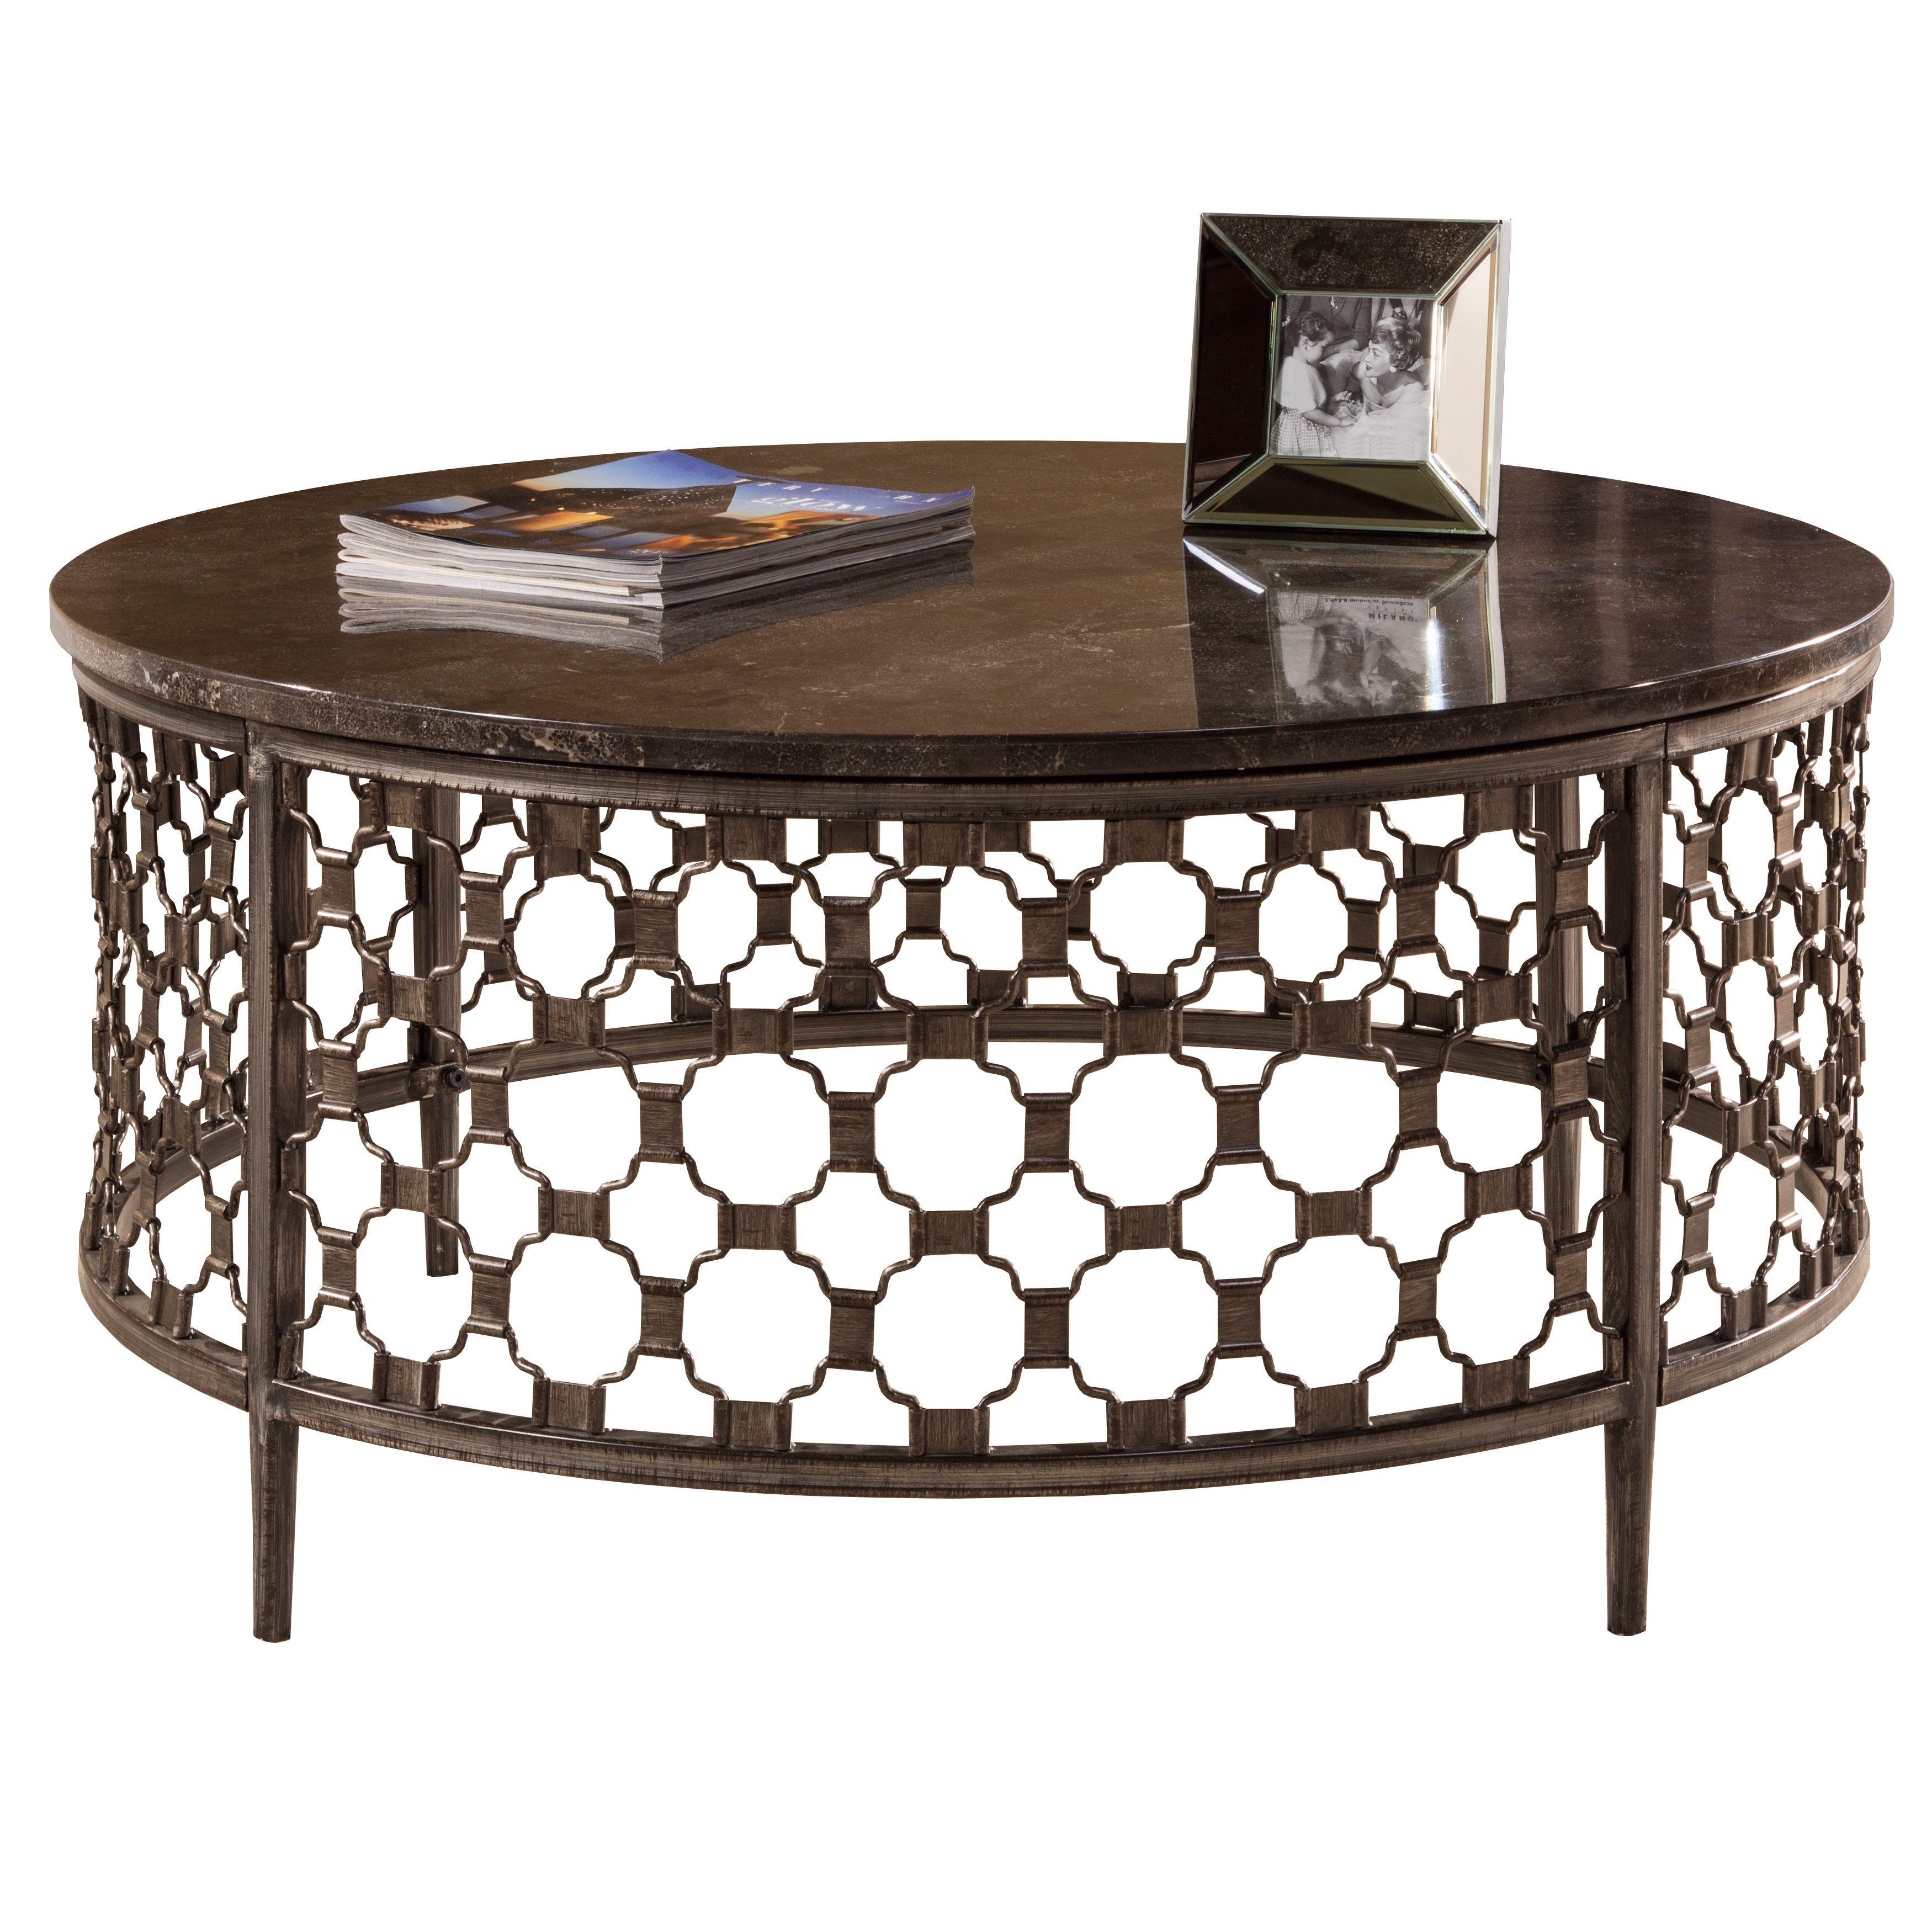 update your living room with this brescello round coffee table from rh pinterest com